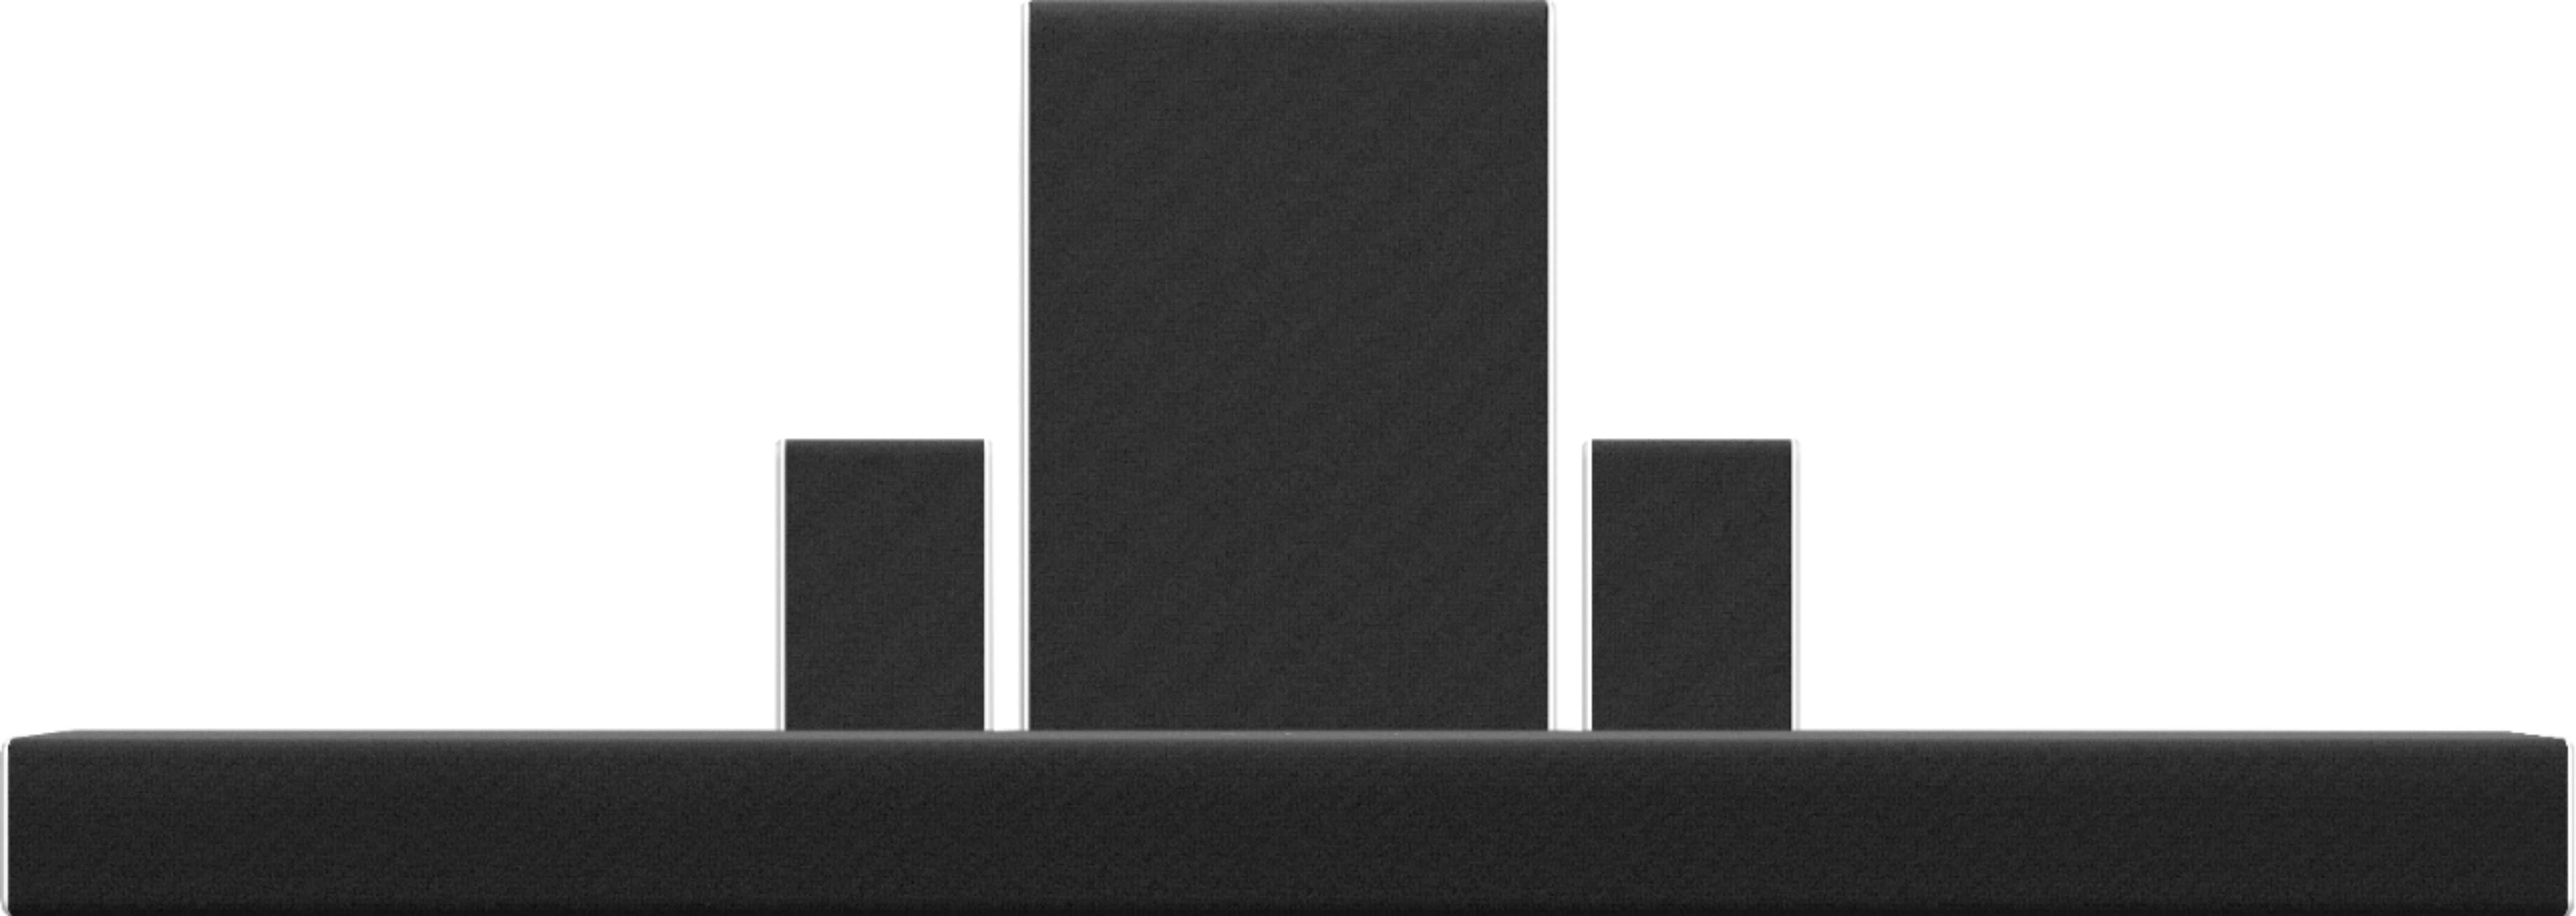 Vizio 5 1 2 Dolby Atmos Soundbar with subwoofer and